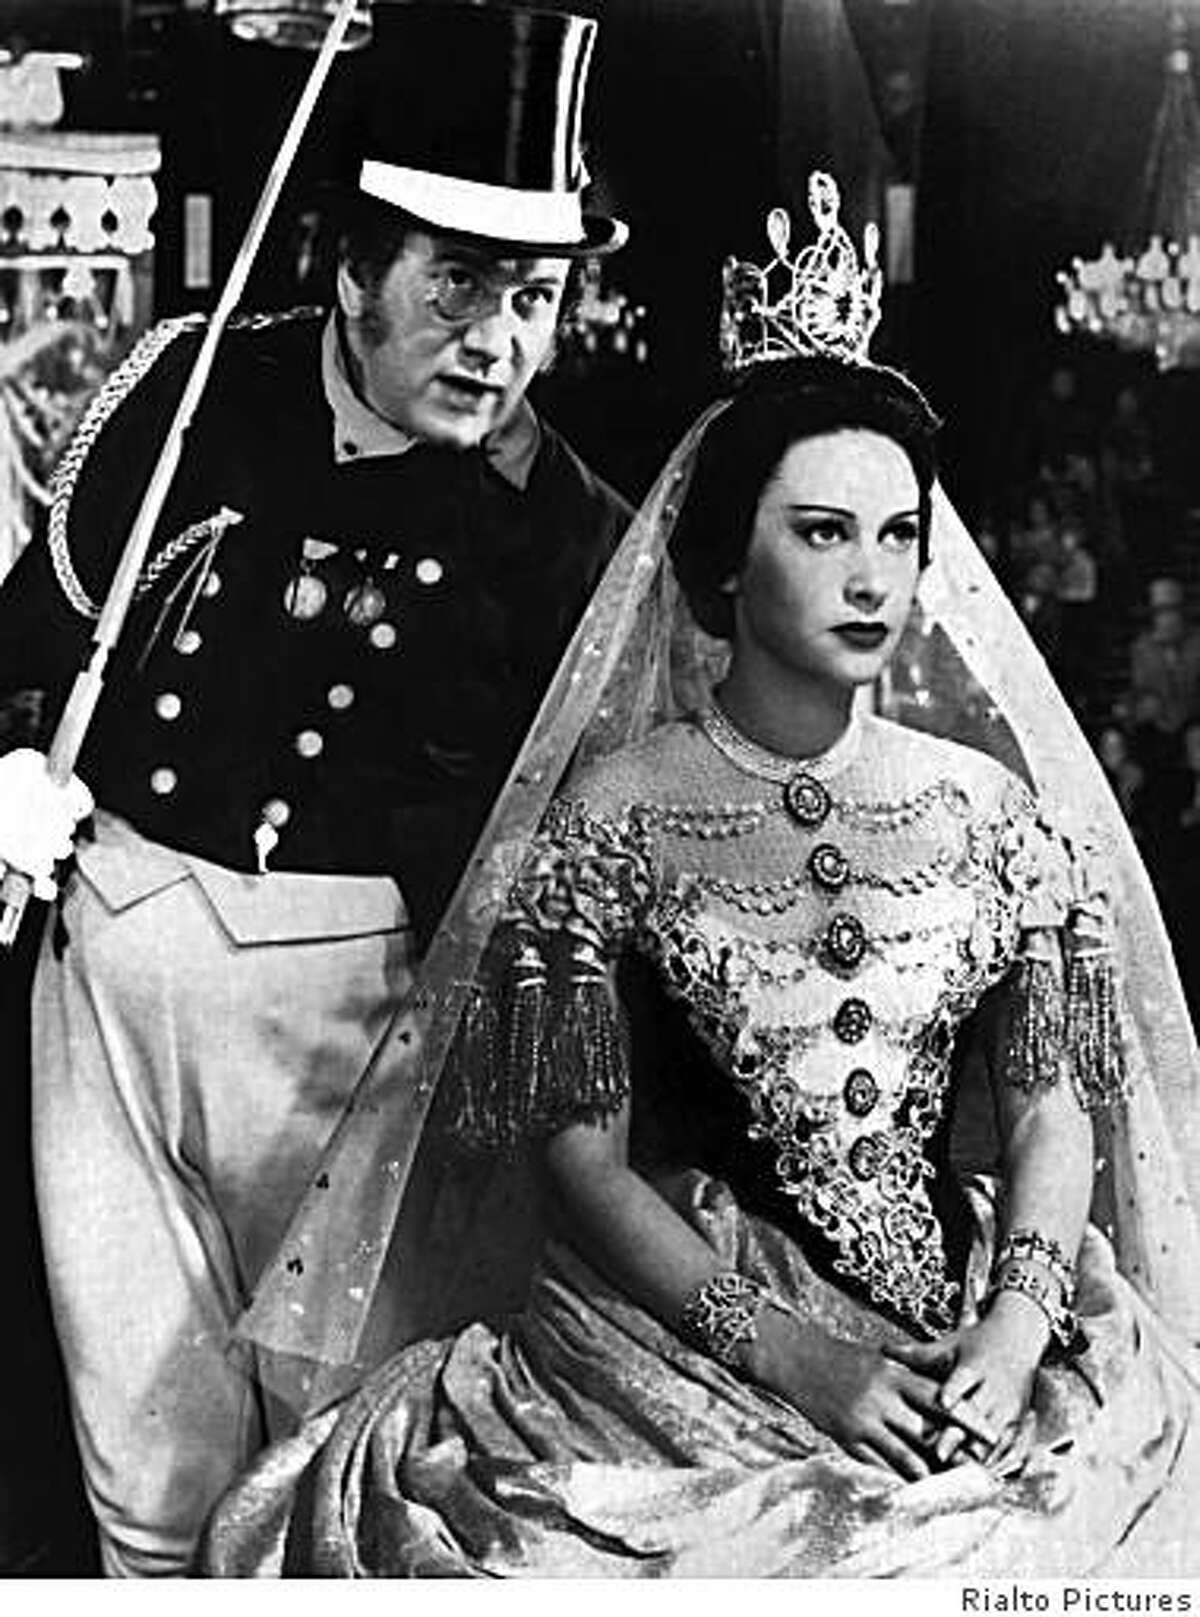 Martine Carol as the title character in the 1955 Max Ophuls movie